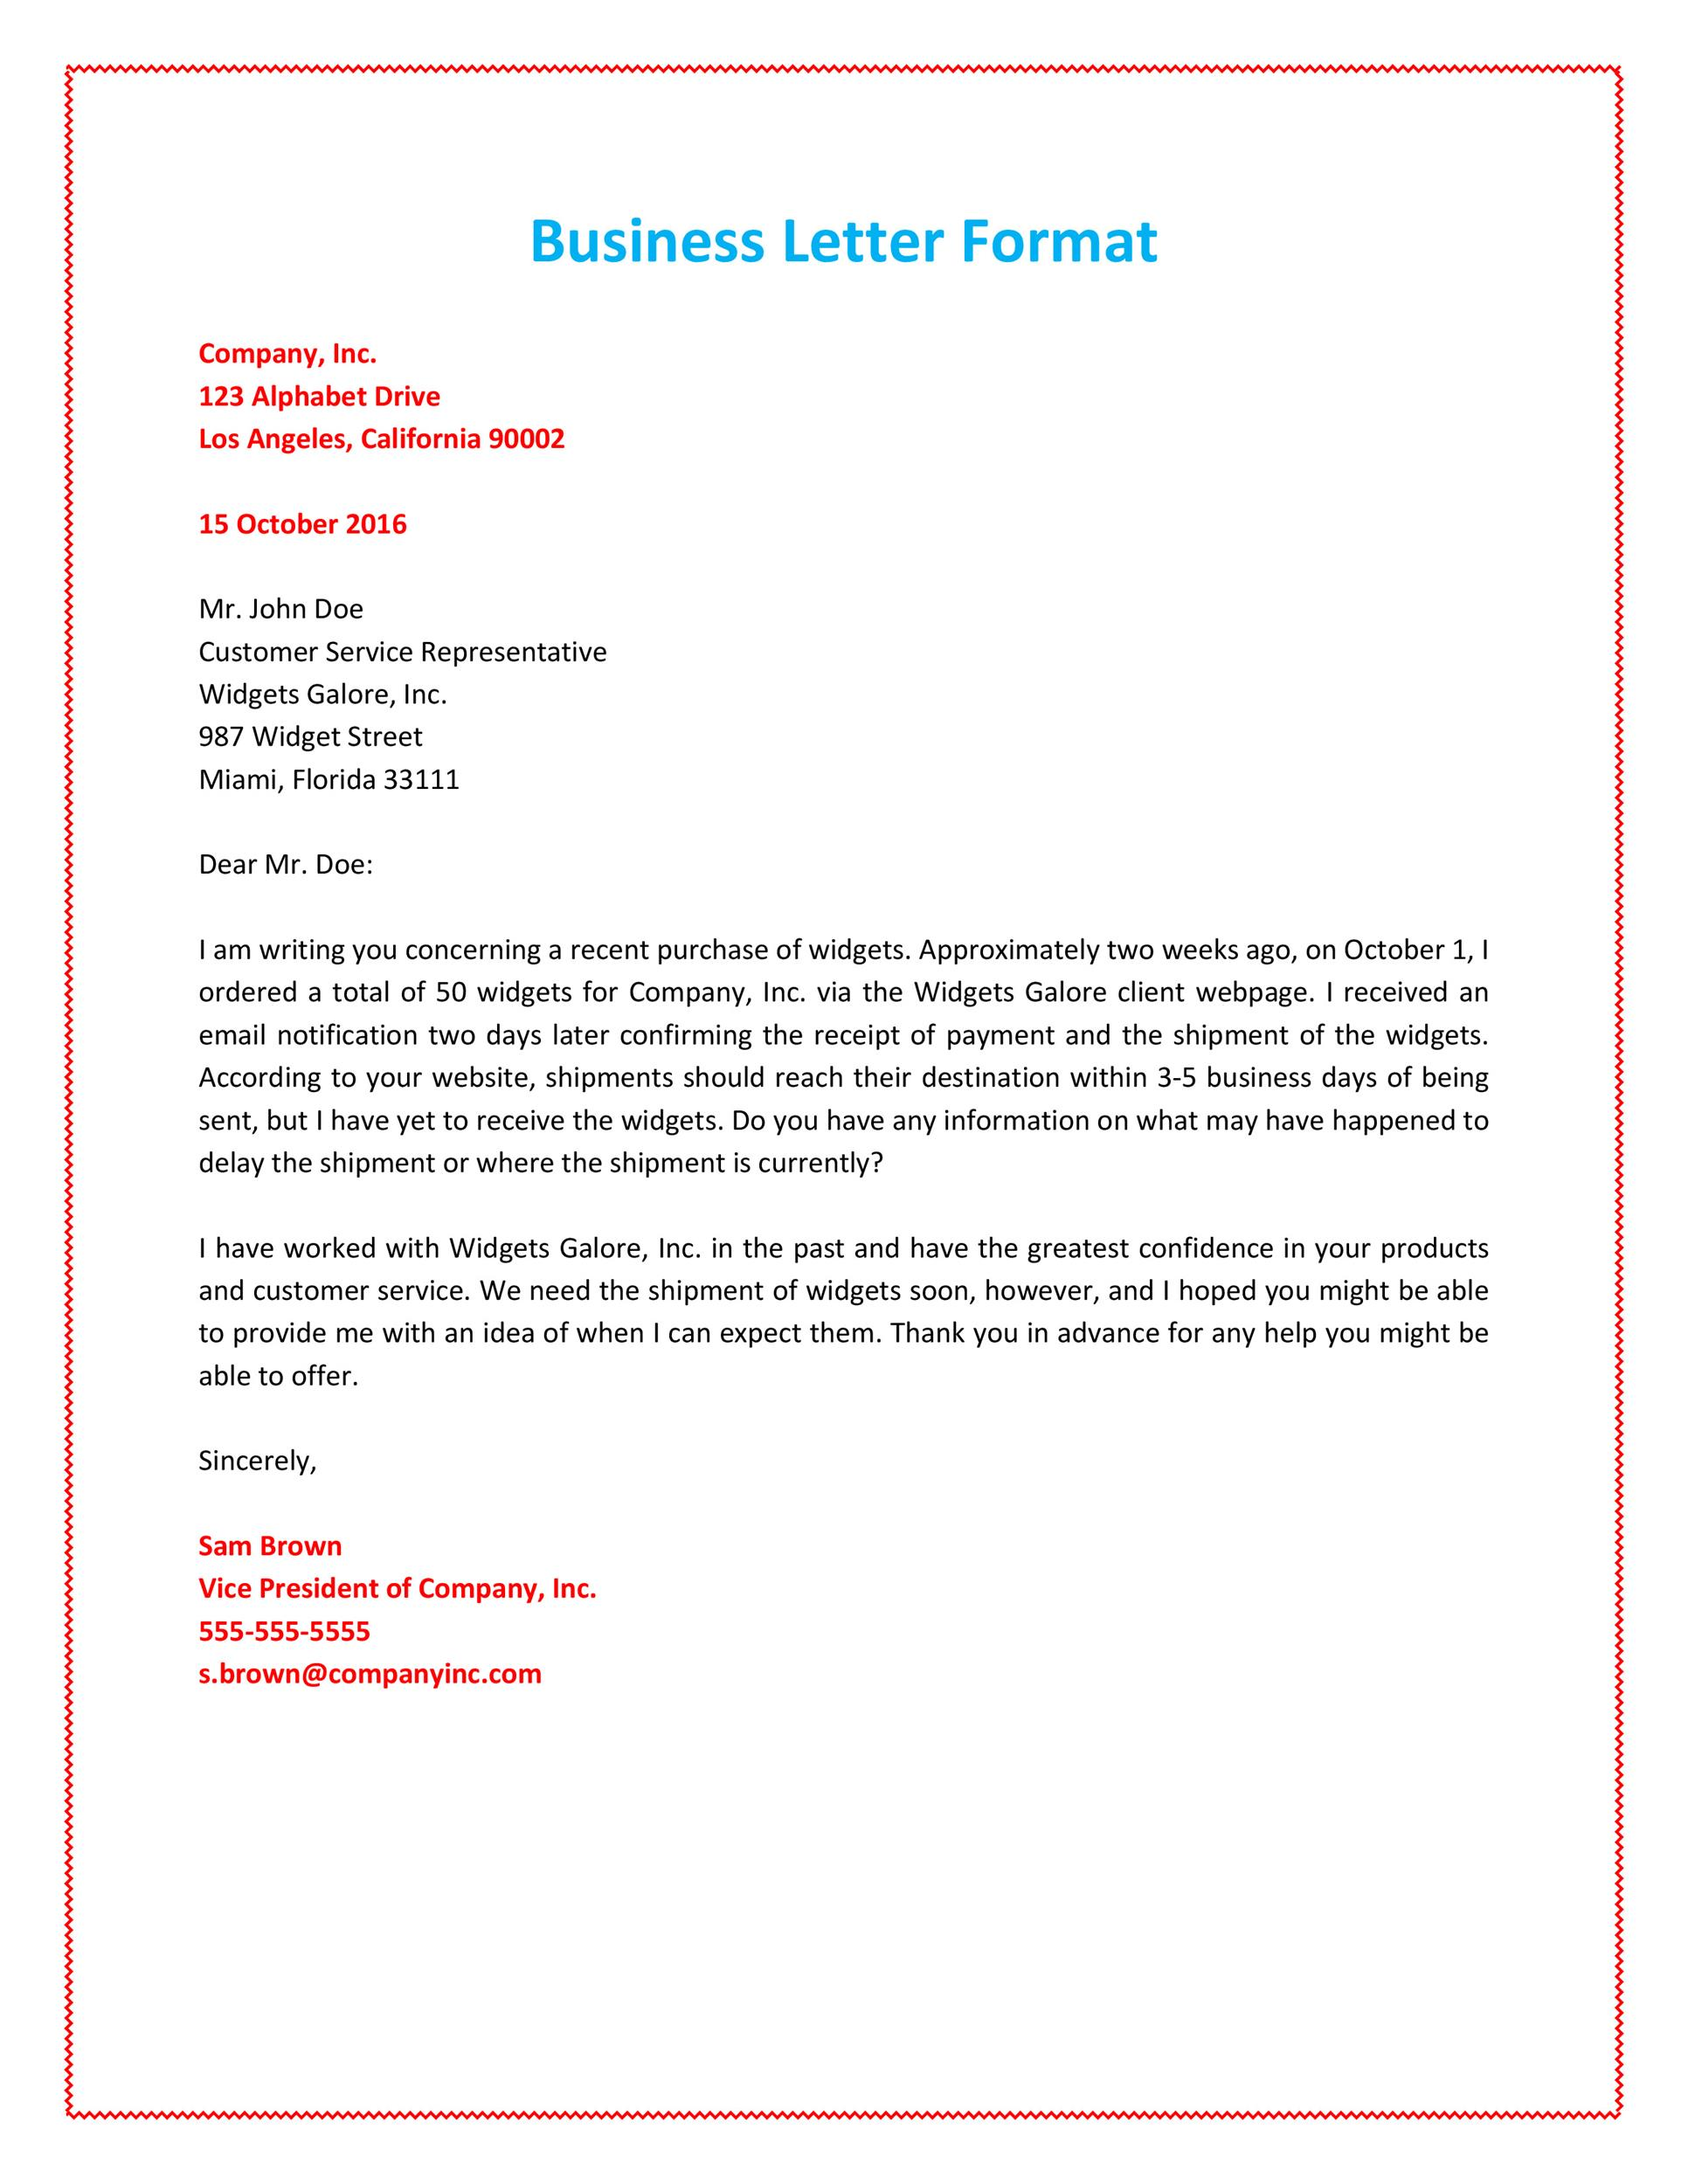 35 formal business letter format templates examples template lab printable formal business letter 01 spiritdancerdesigns Image collections